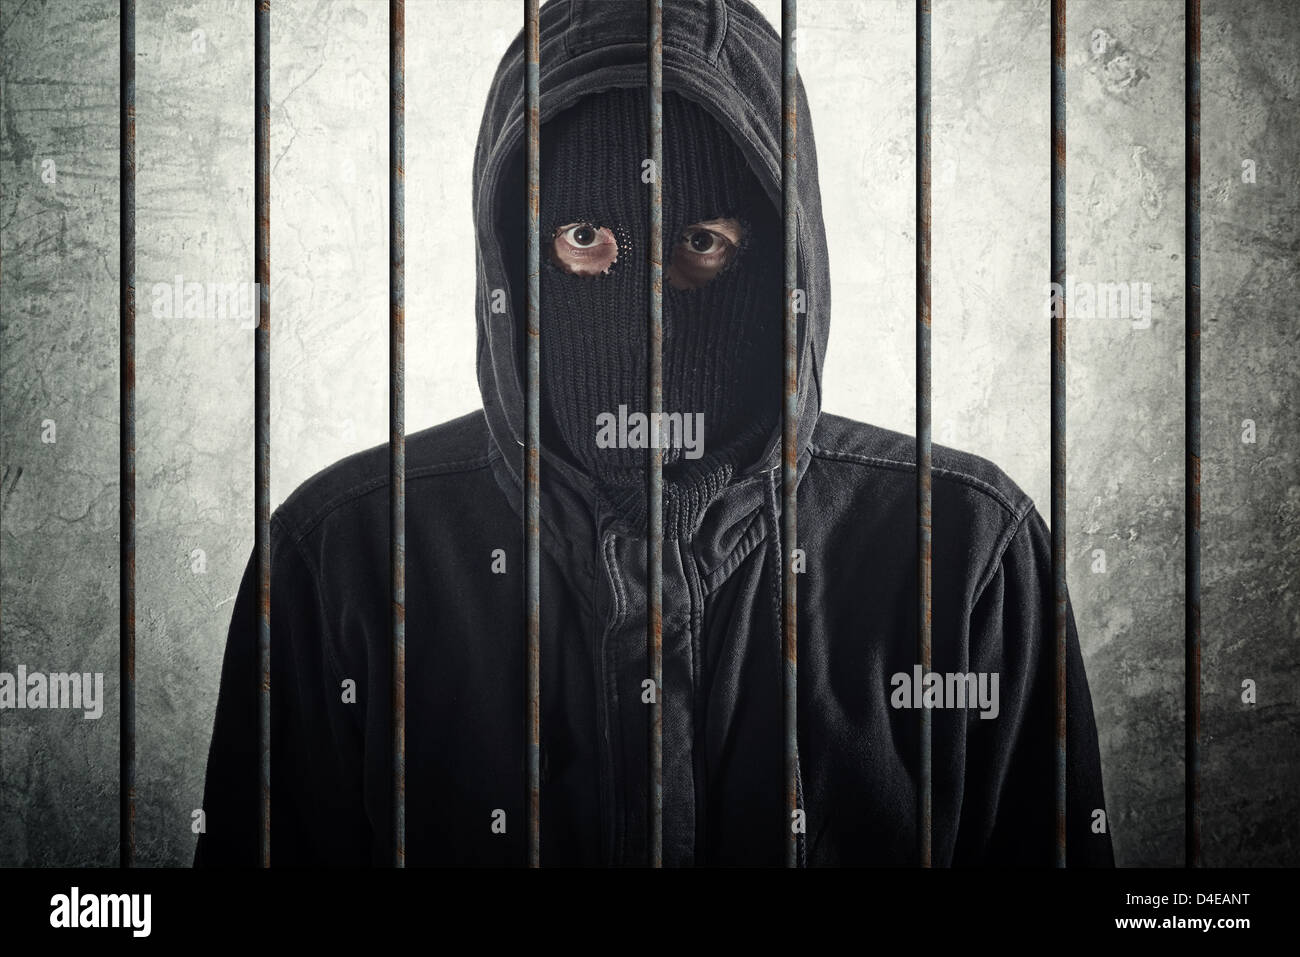 Arrested burglar concept, thief with balaclava caught and arrested, put behind bars - Stock Image